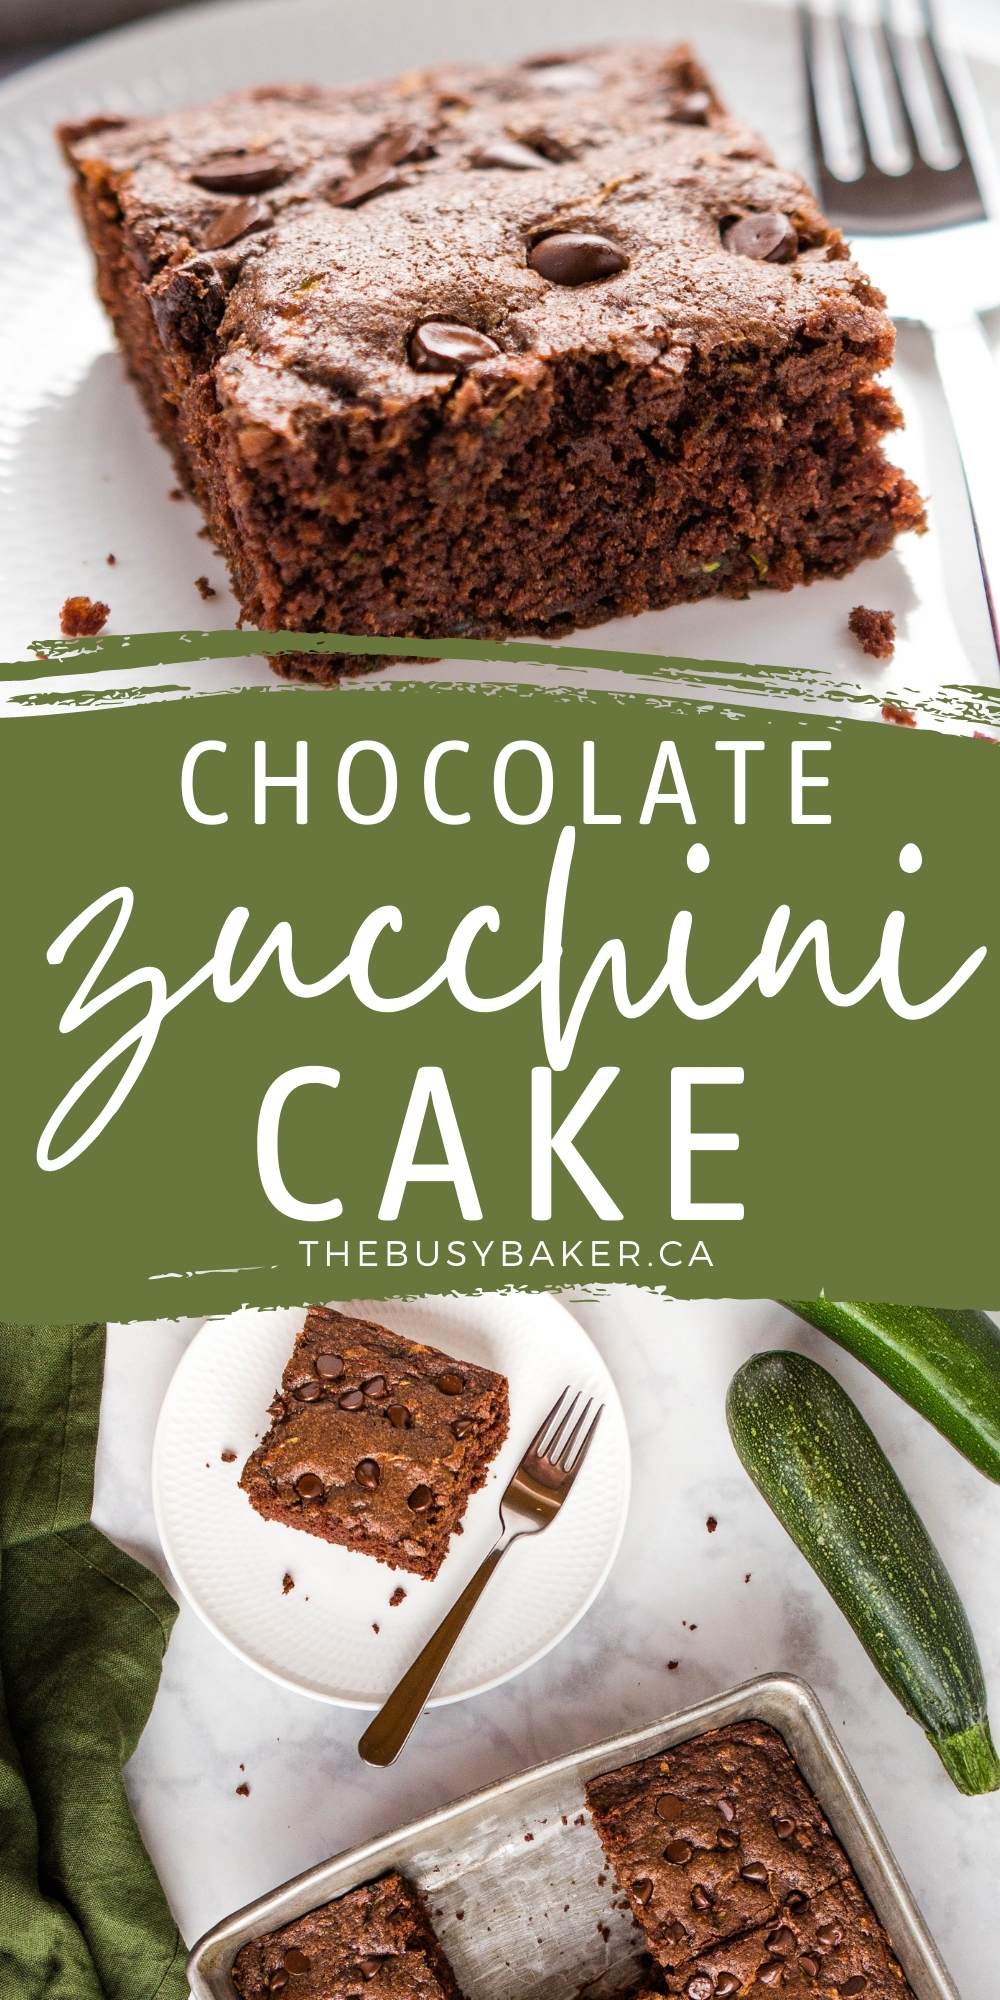 This Zucchini Chocolate Cake is moist and delicious, easy to make, and packed with delicious chocolate flavour and fresh zucchini! Recipe from thebusybaker.ca! #zucchinicake #zucchinibread #chocolatezucchinicake #zucchinichocolate #cake #baking #homemade via @busybakerblog